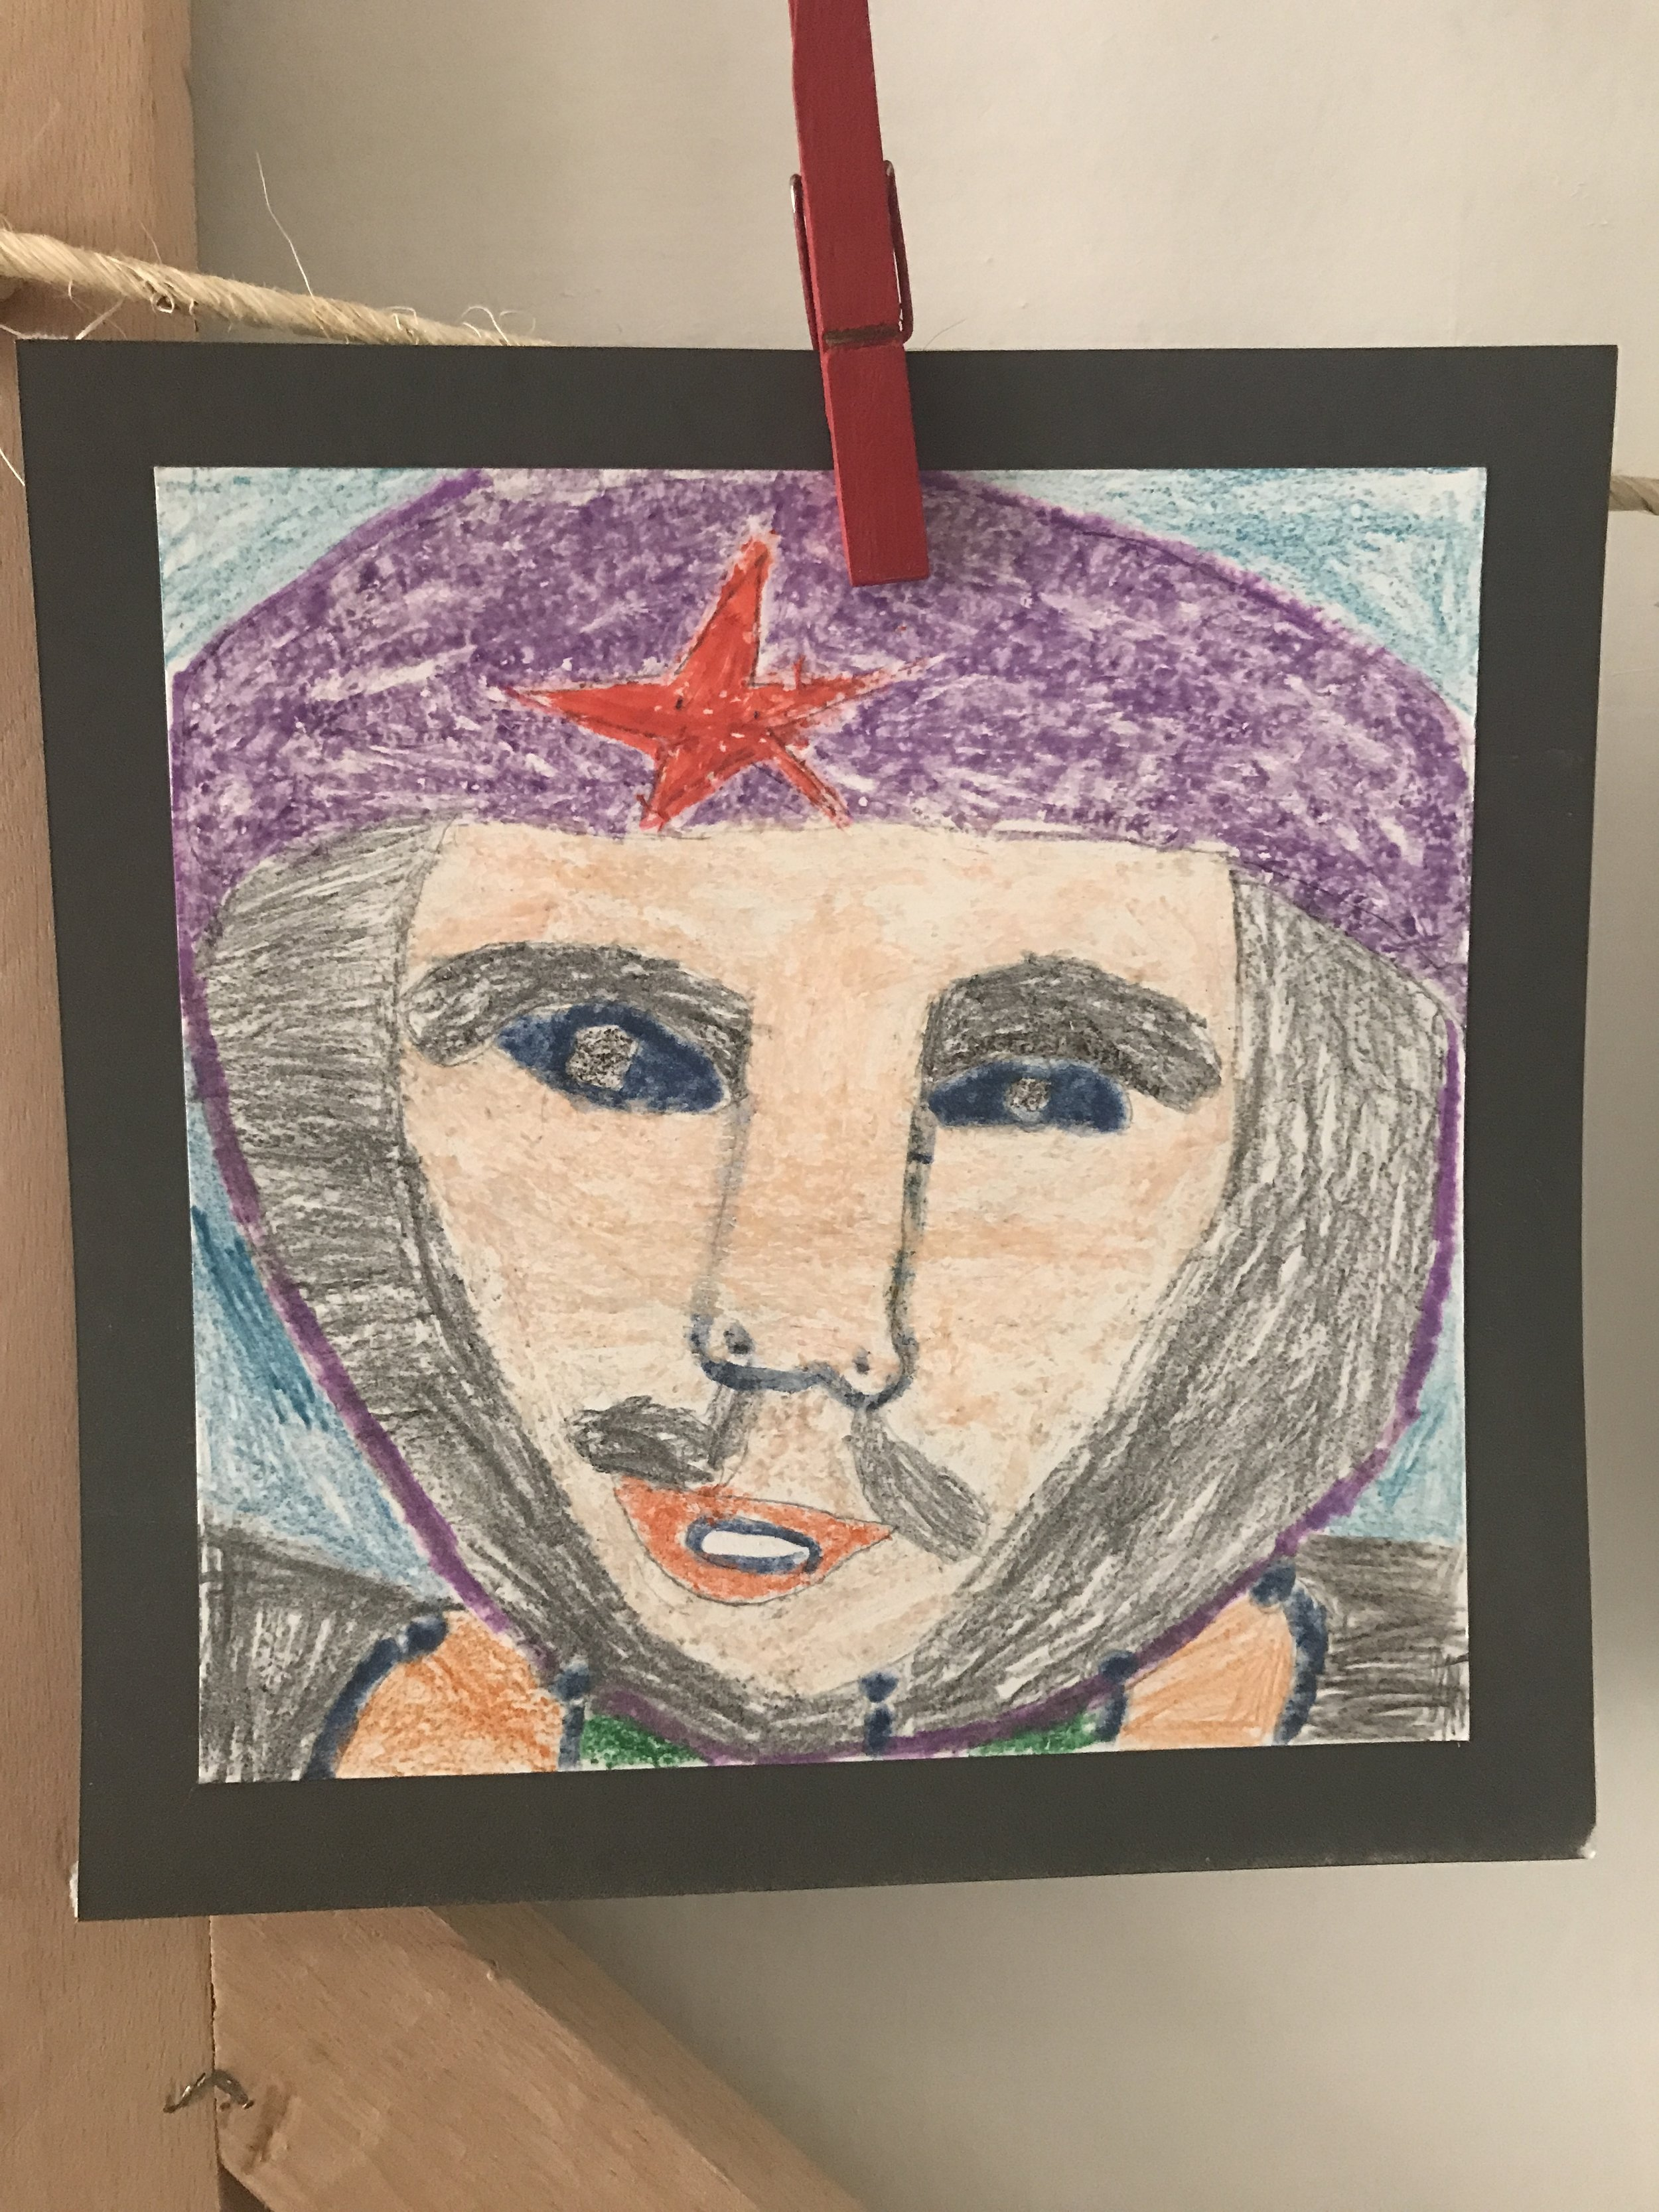 A kids crayon drawing of national hero Ché Guevara.